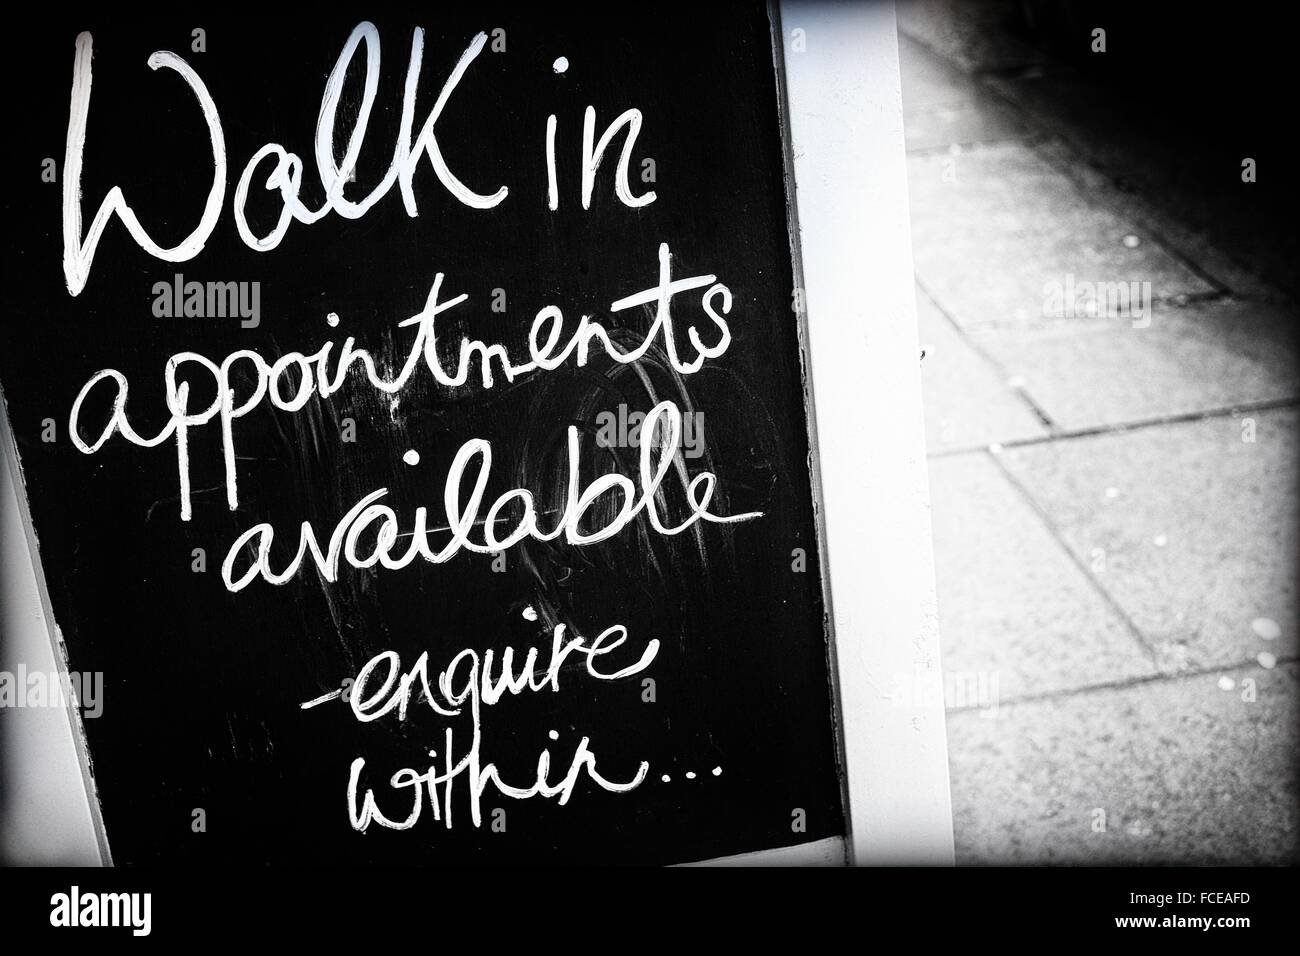 chalkboard-on-the-street-outside-a-business-with-the-text-walk-in-FCEAFD.jpg?profile=RESIZE_400x